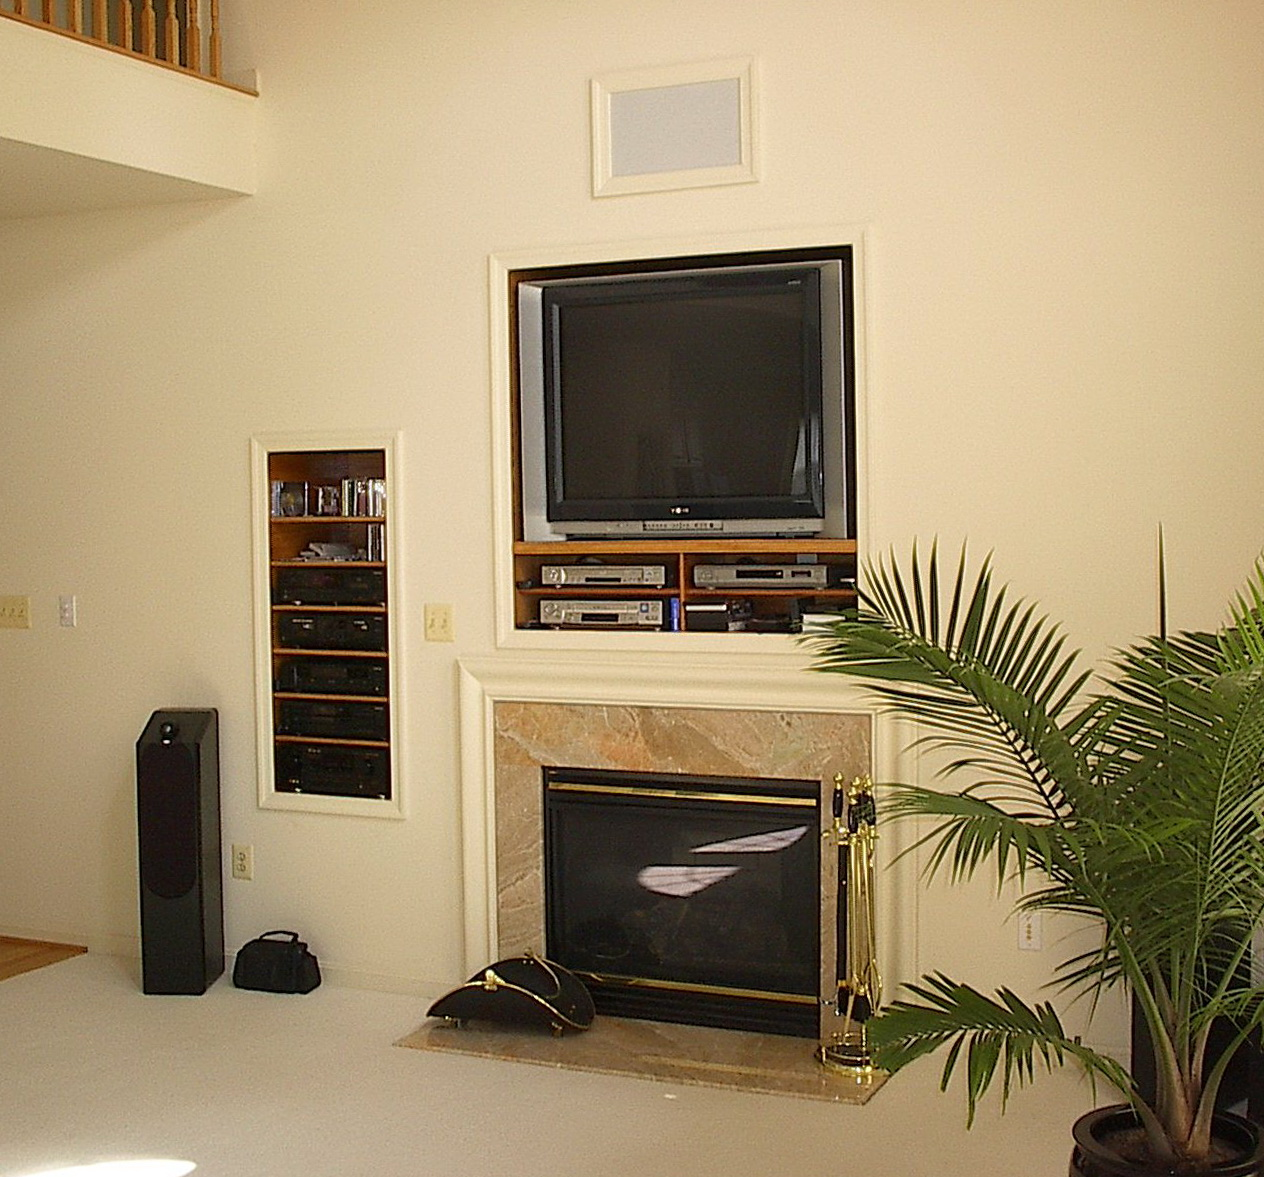 Entertainment Center With Fireplace And Fridge   Home Design Ideas